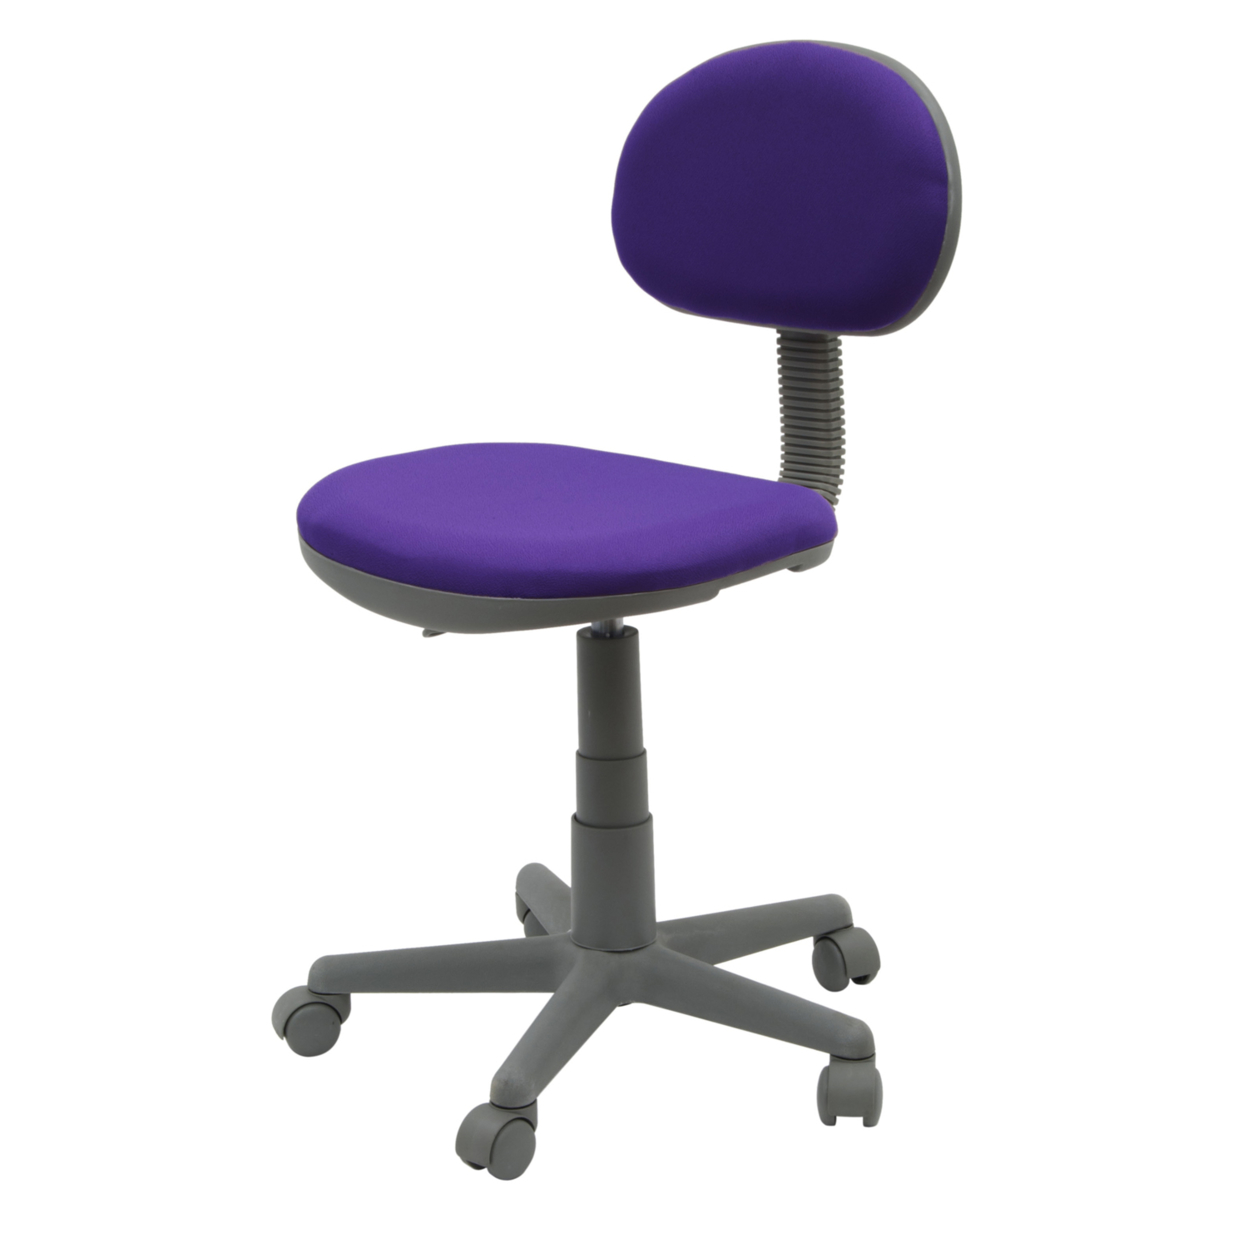 Studio Designs Home Office Deluxe Task Chair - Purple/Gray